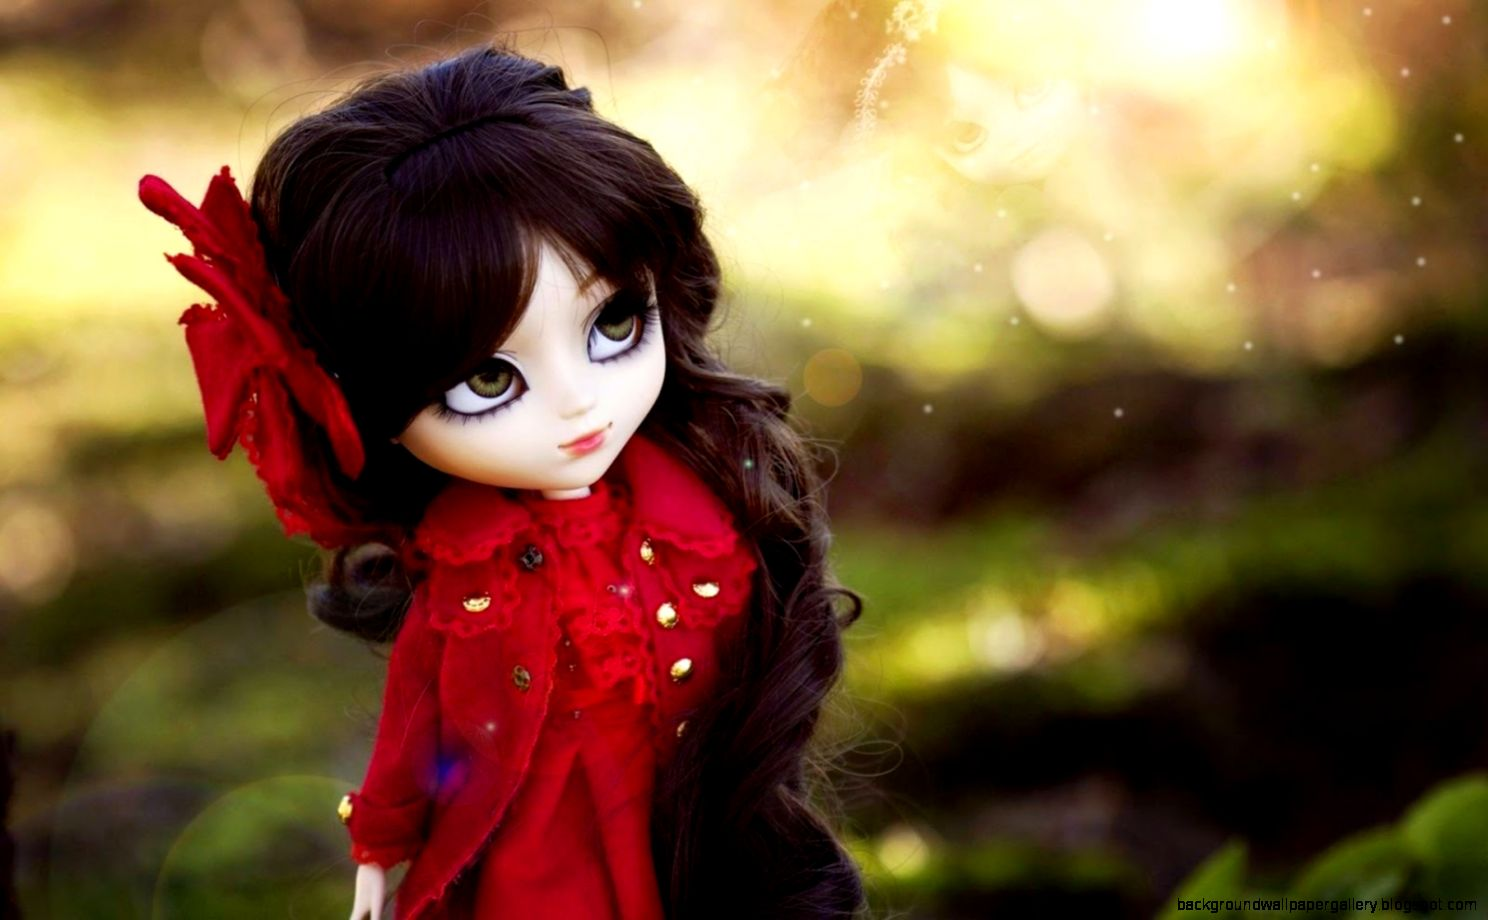 Cute Girl Red Hair Dolls Wallpaper